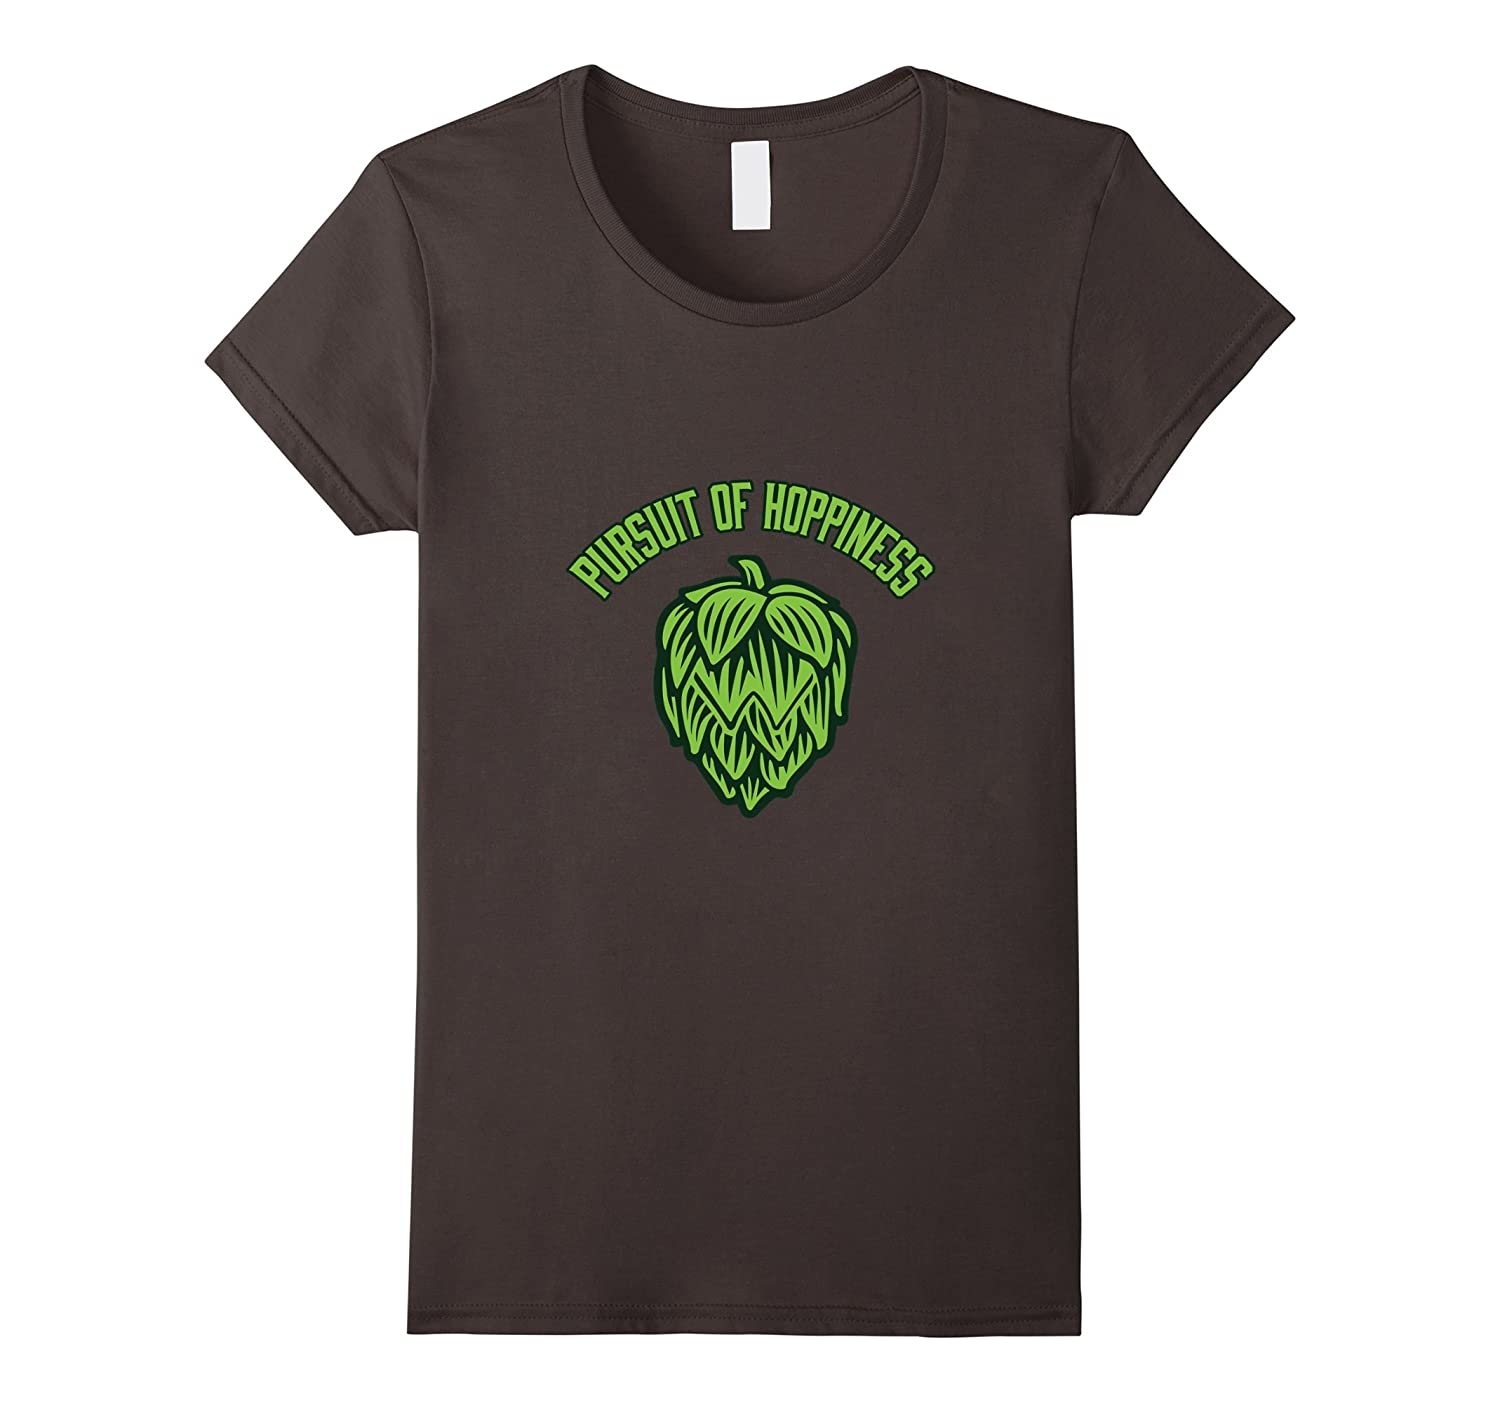 Pursuit of Hoppiness T-Shirt Beer Lovers Tee